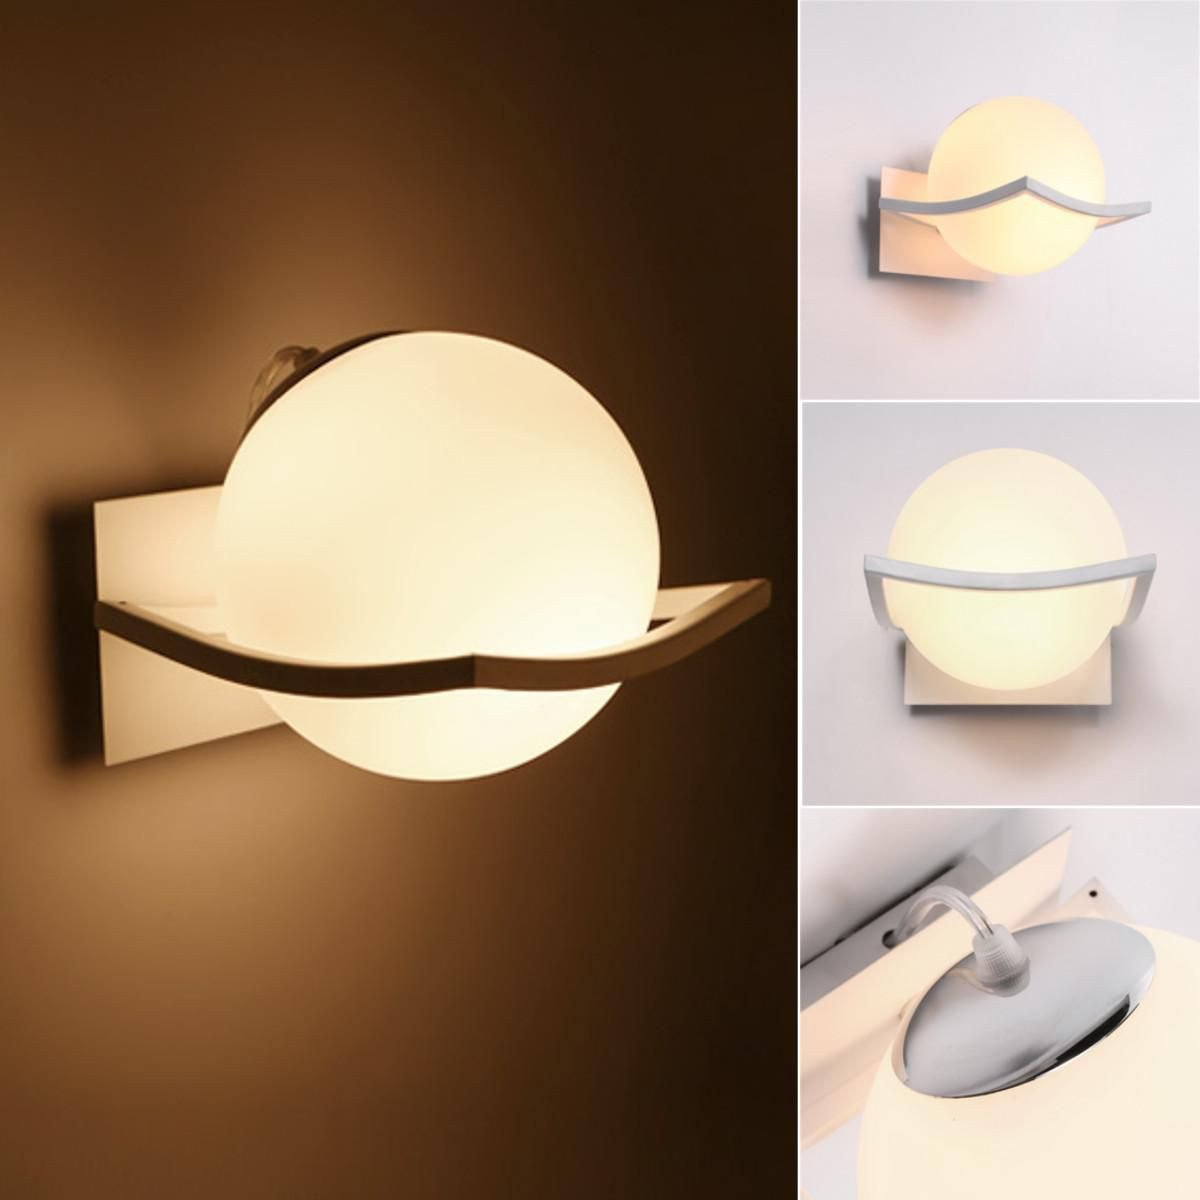 White Light for Bedroom Fresh Led Spherical Glass Wall Lamp Front Light Bedroom Bedside